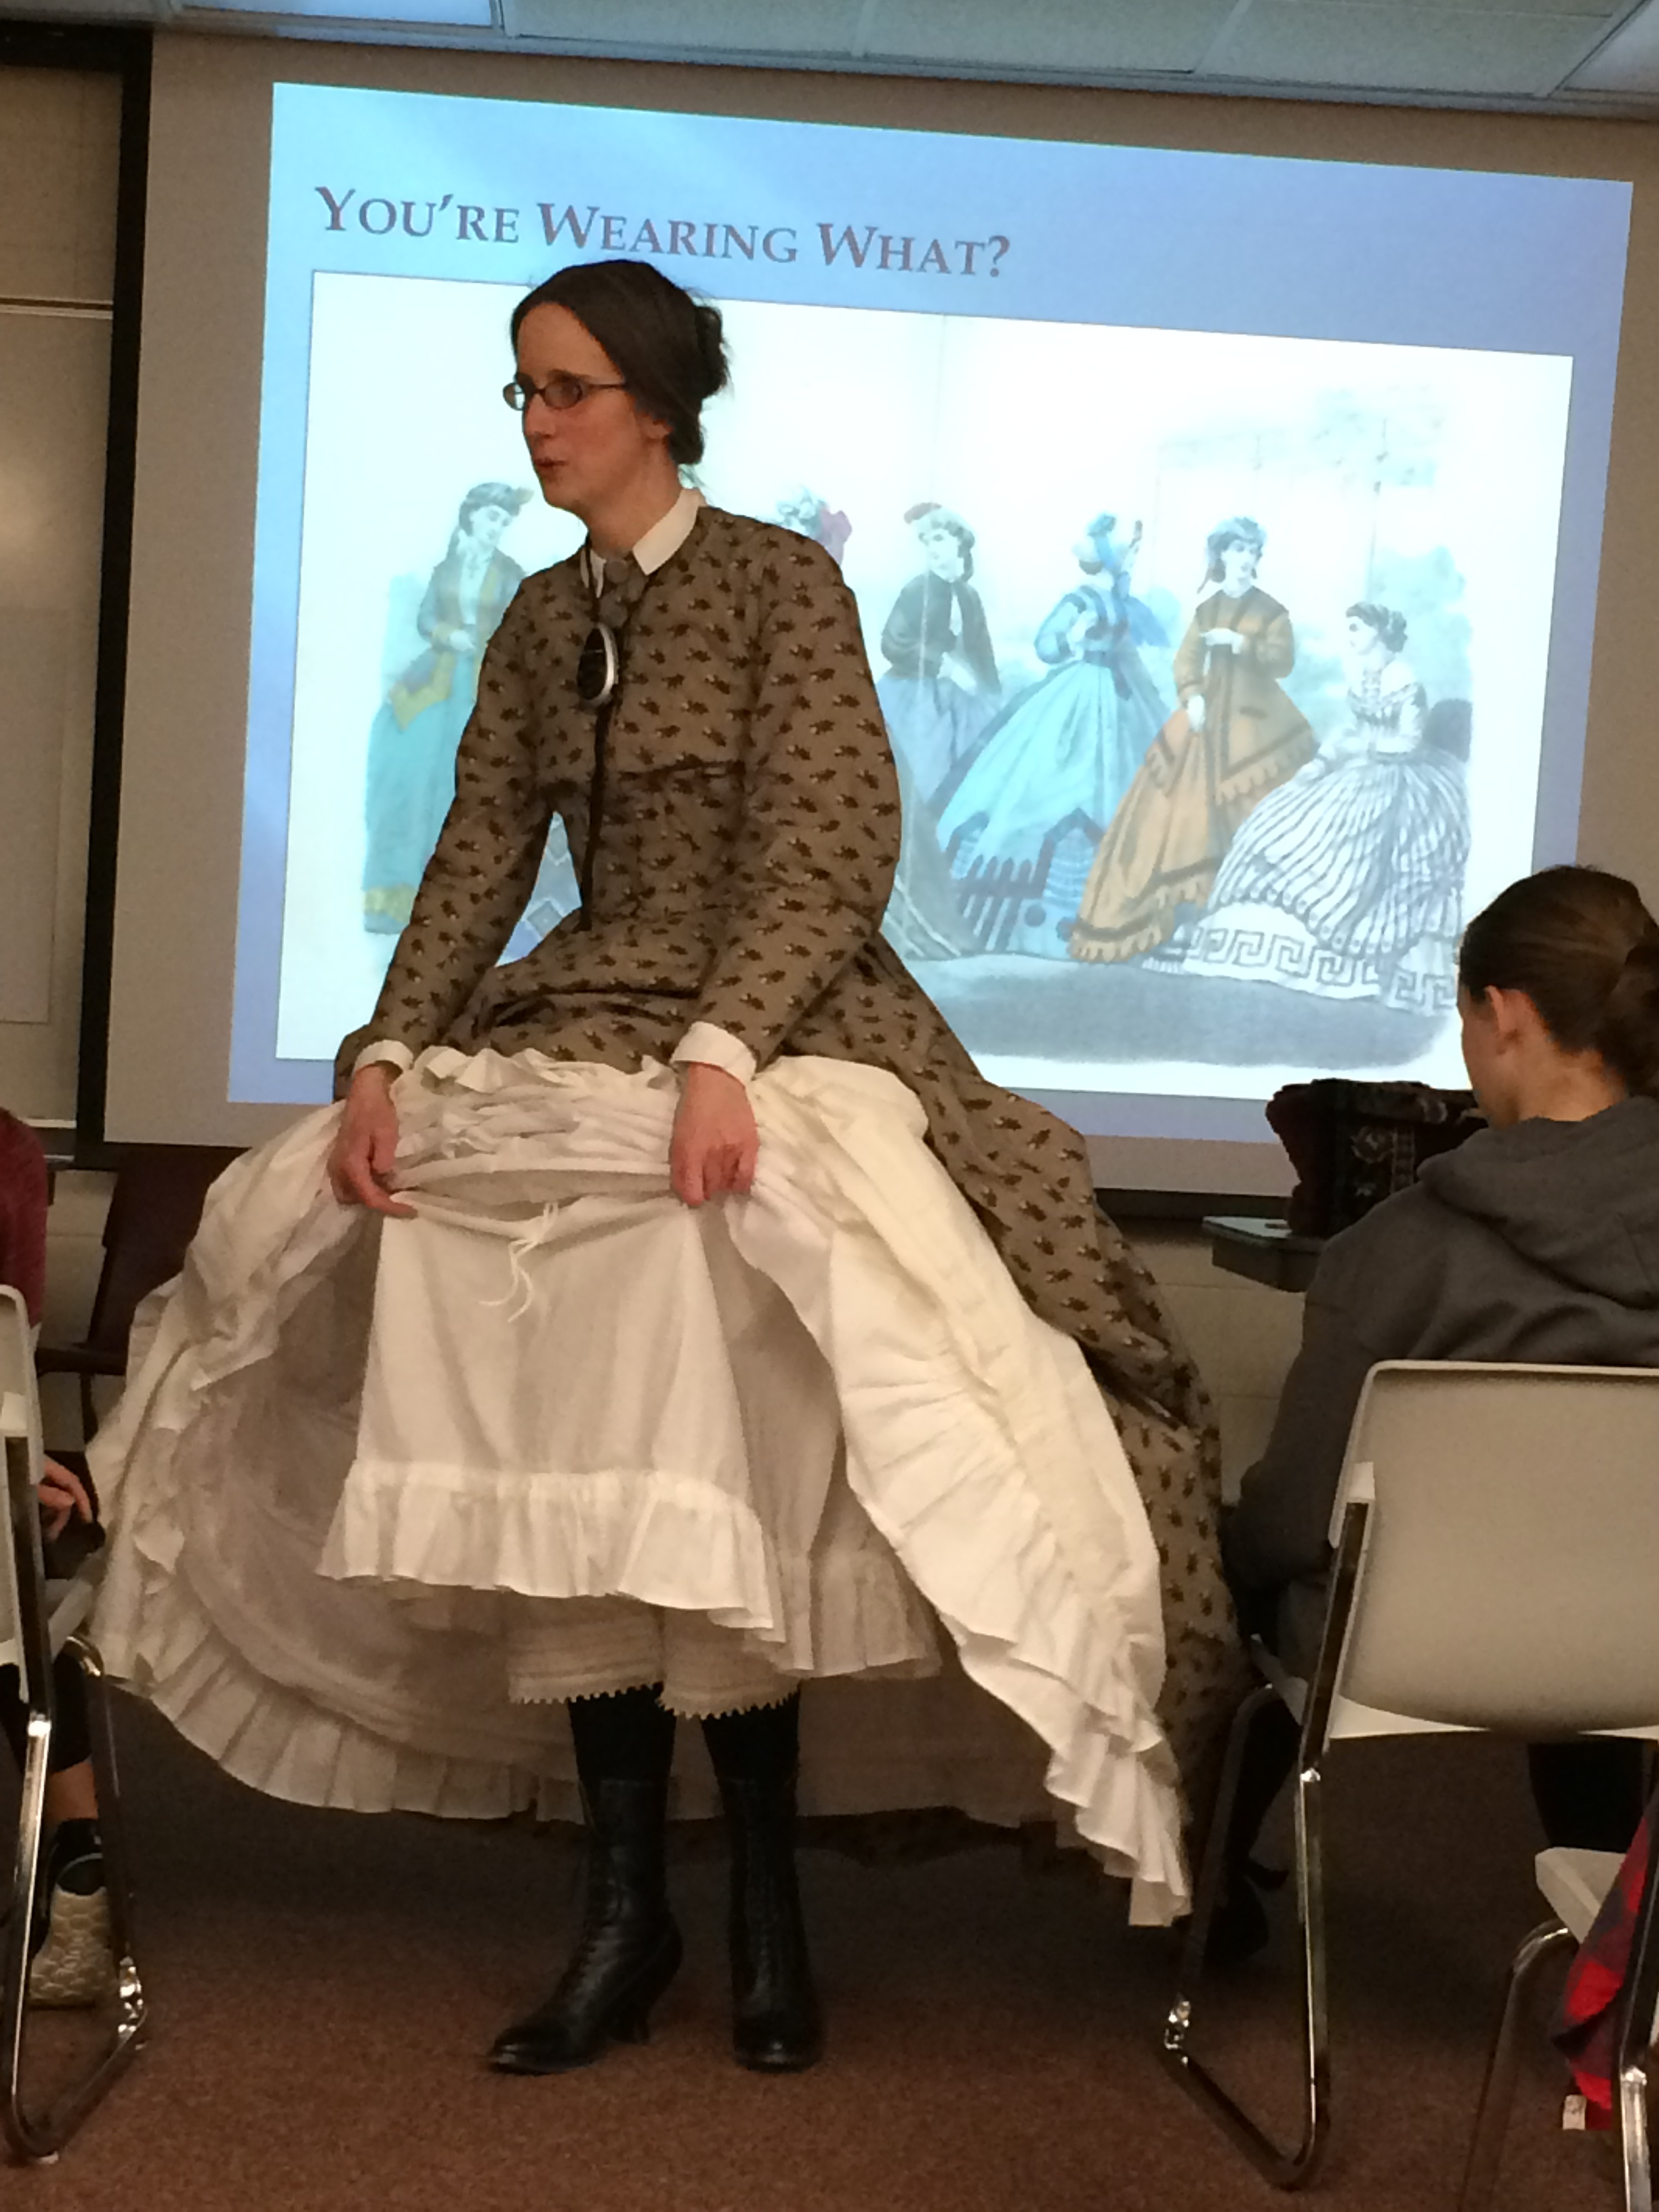 ACHS staff will bring the Civil War era to life for your classroom or social group by dressing the part and explaining each piece of clothing. They will also describe the elements of daily life and showcase artifacts.